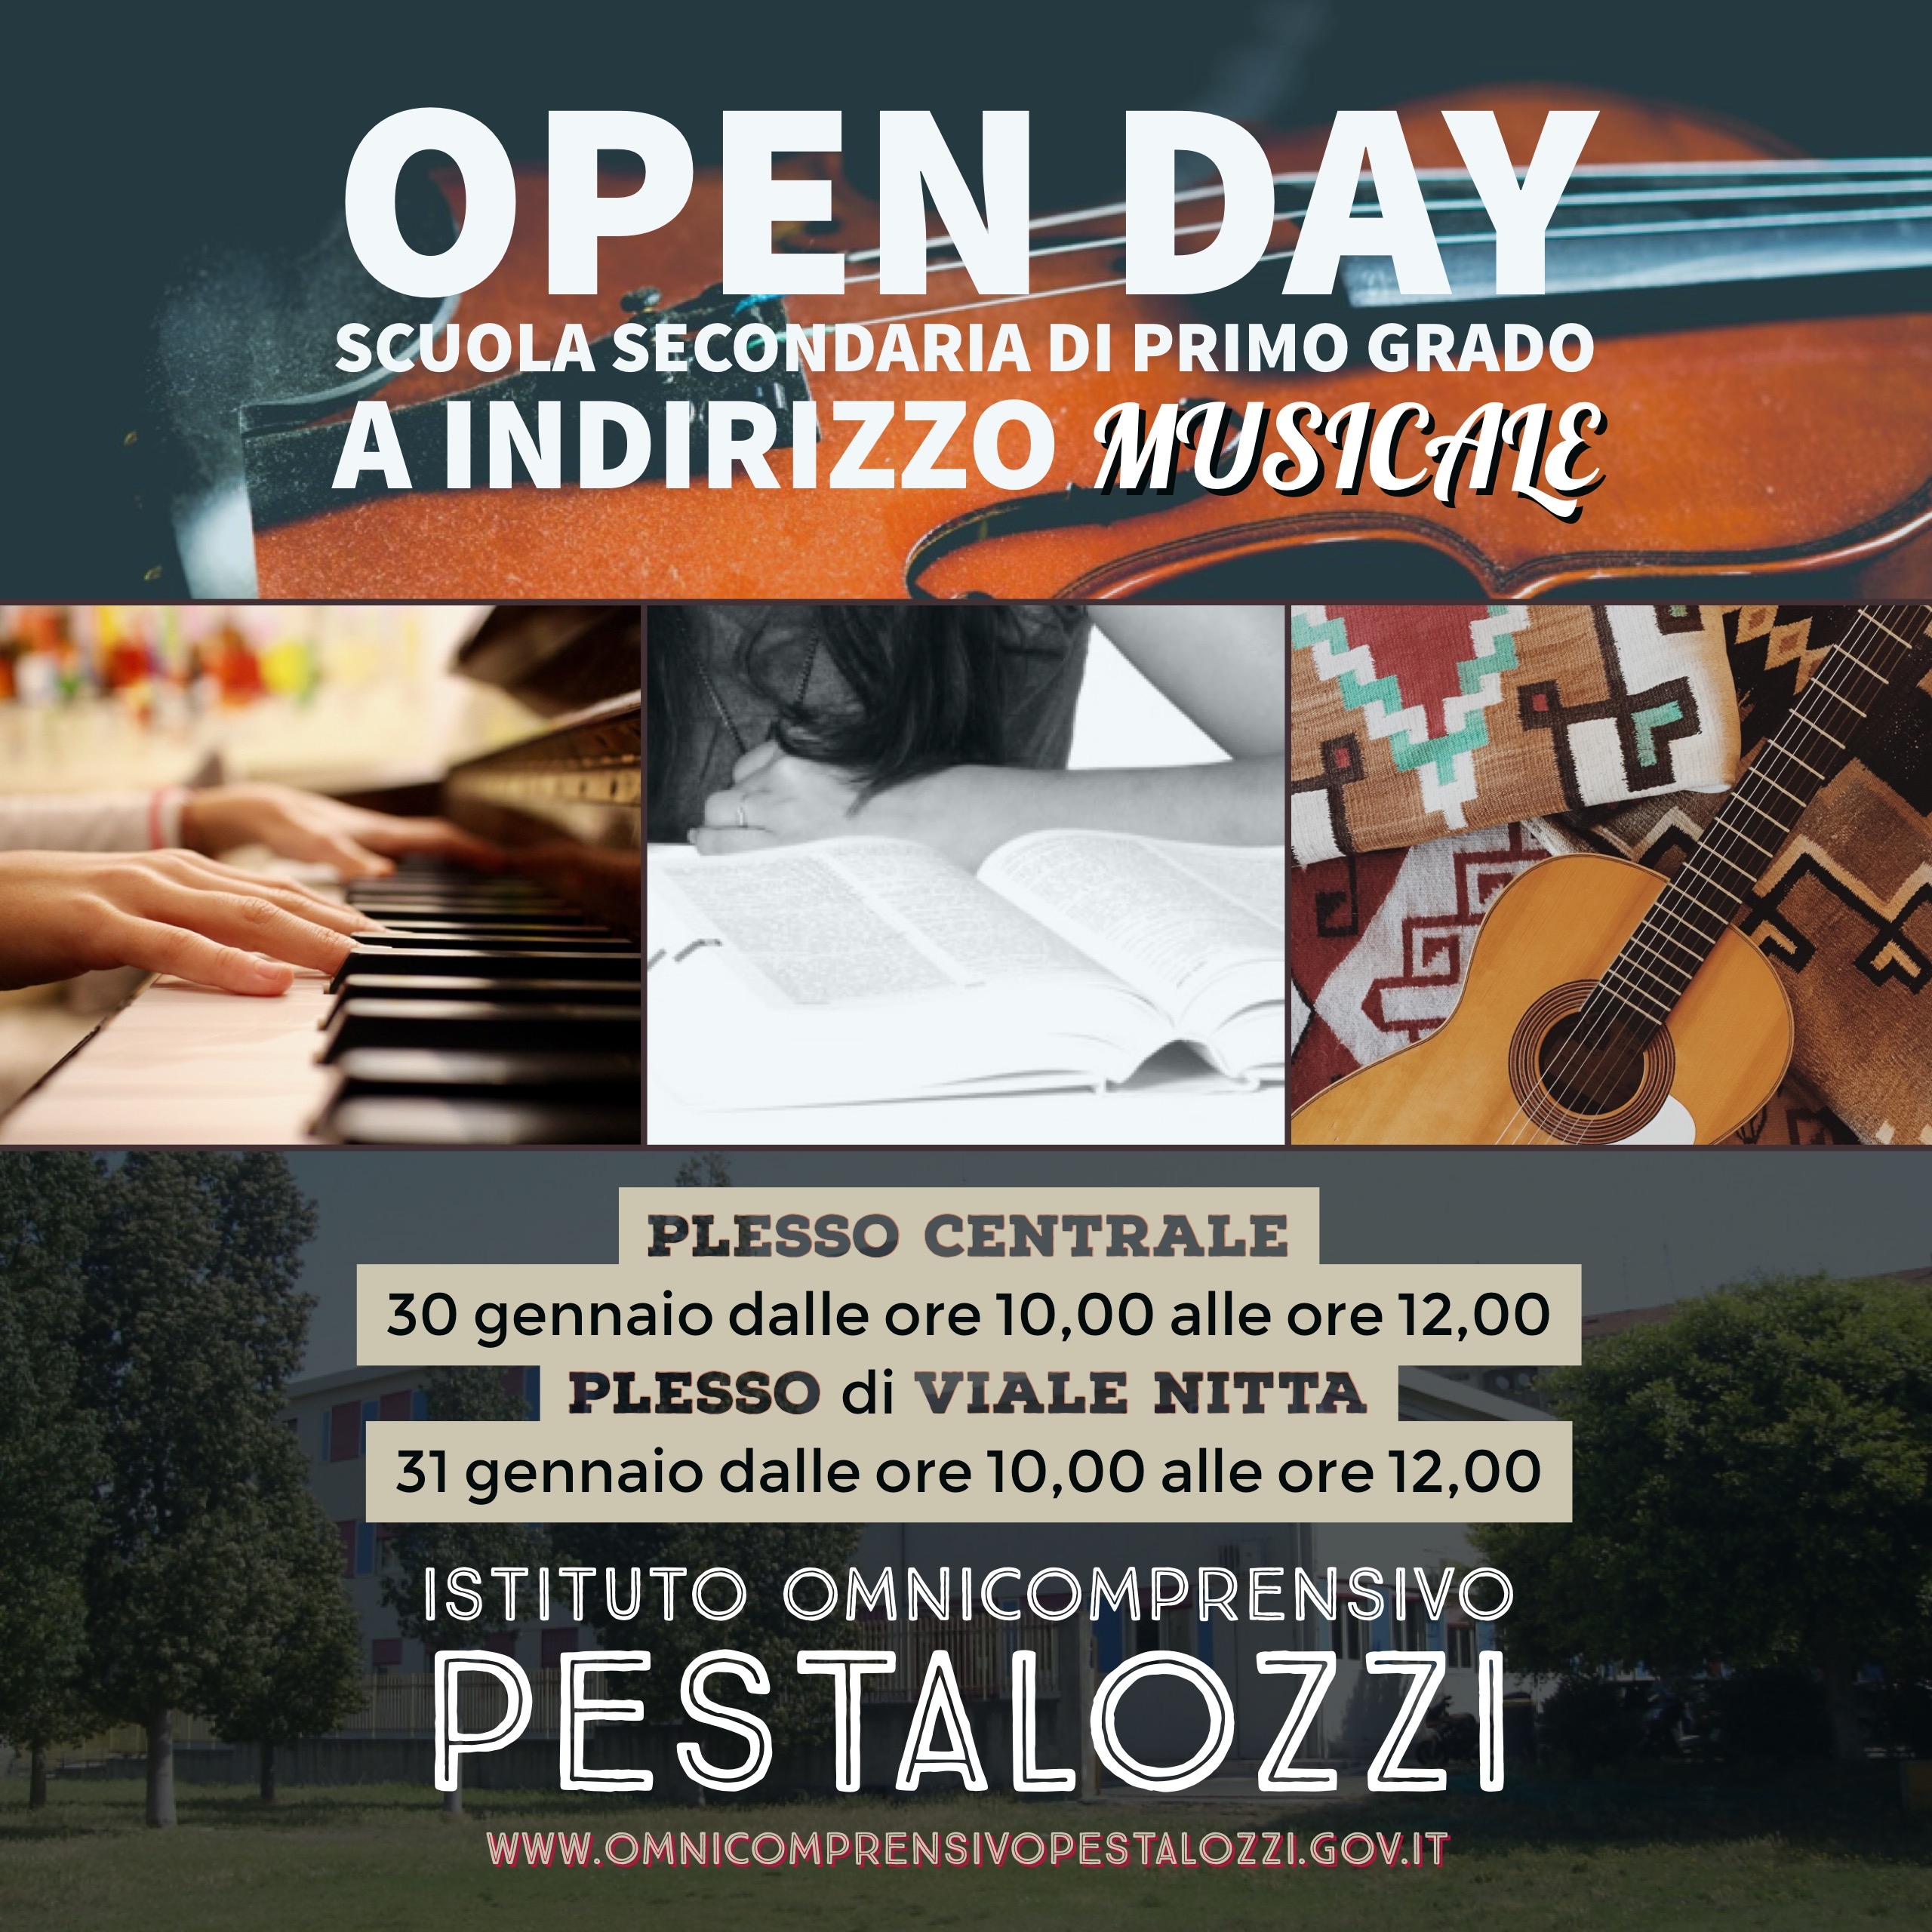 Open day indirizzo musicale